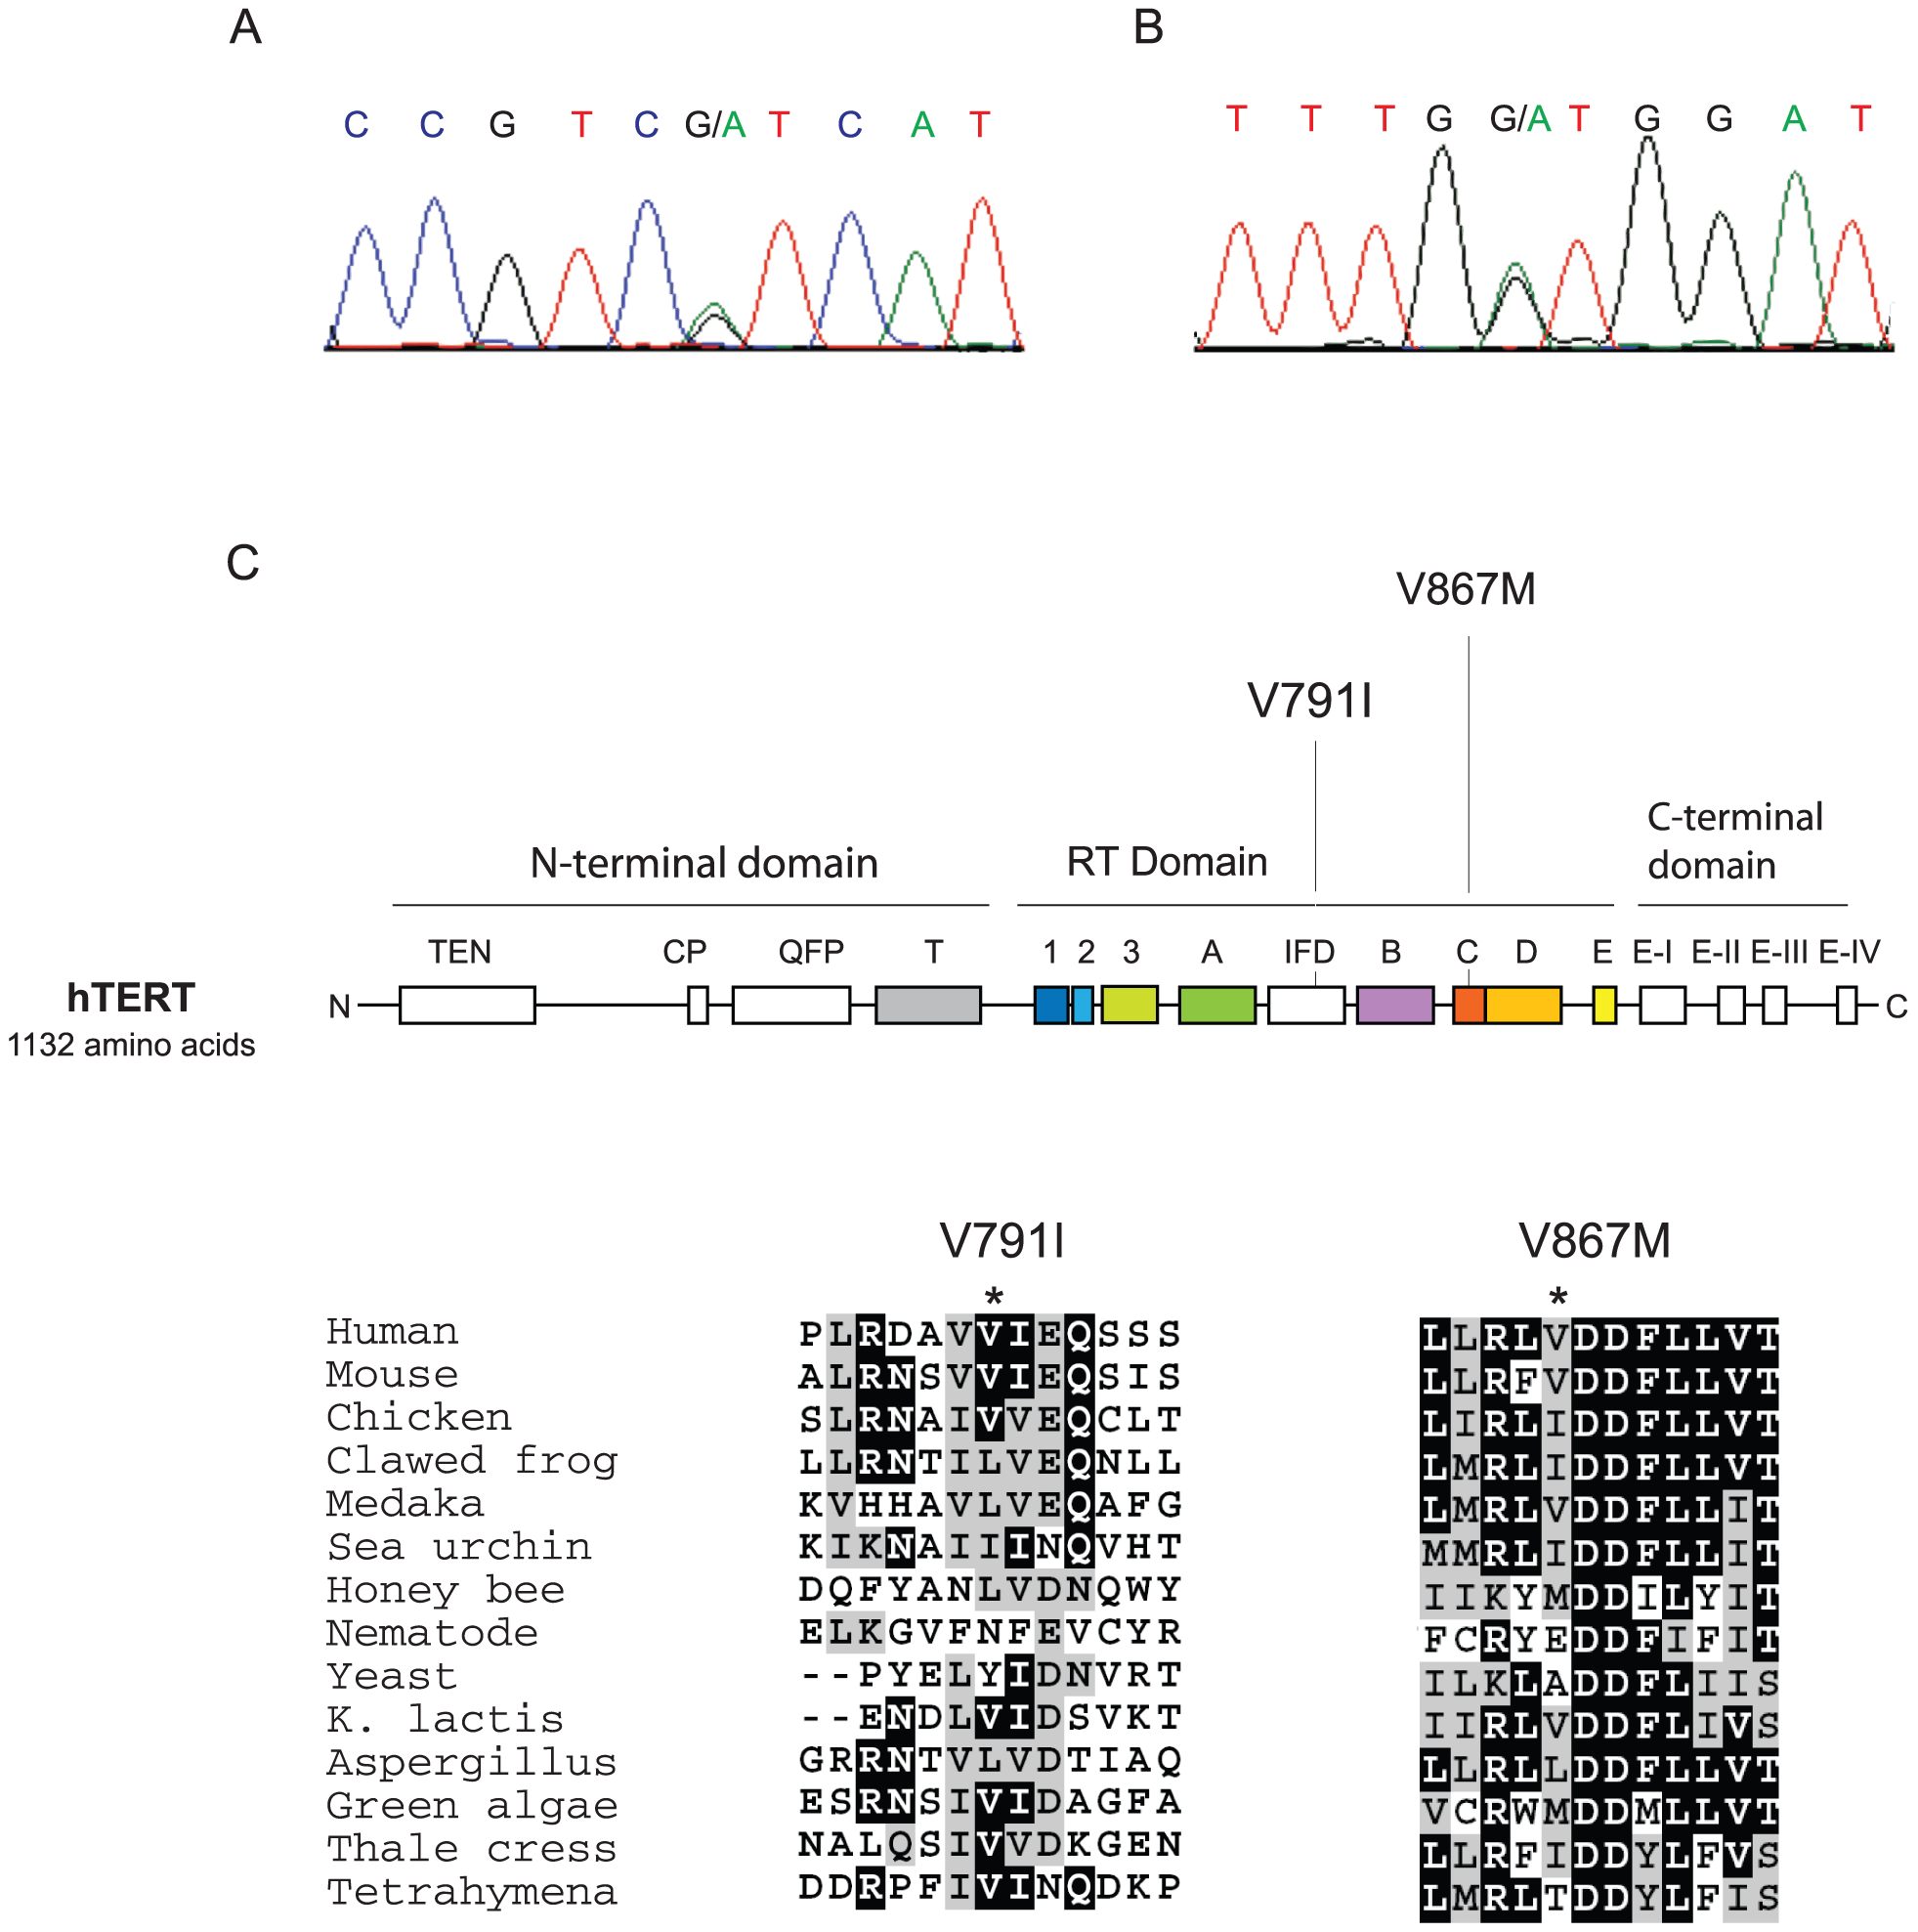 Position and conservation of non-synonymous variants in hTERT shared by pulmonary fibrosis families 13 and 143 probands.